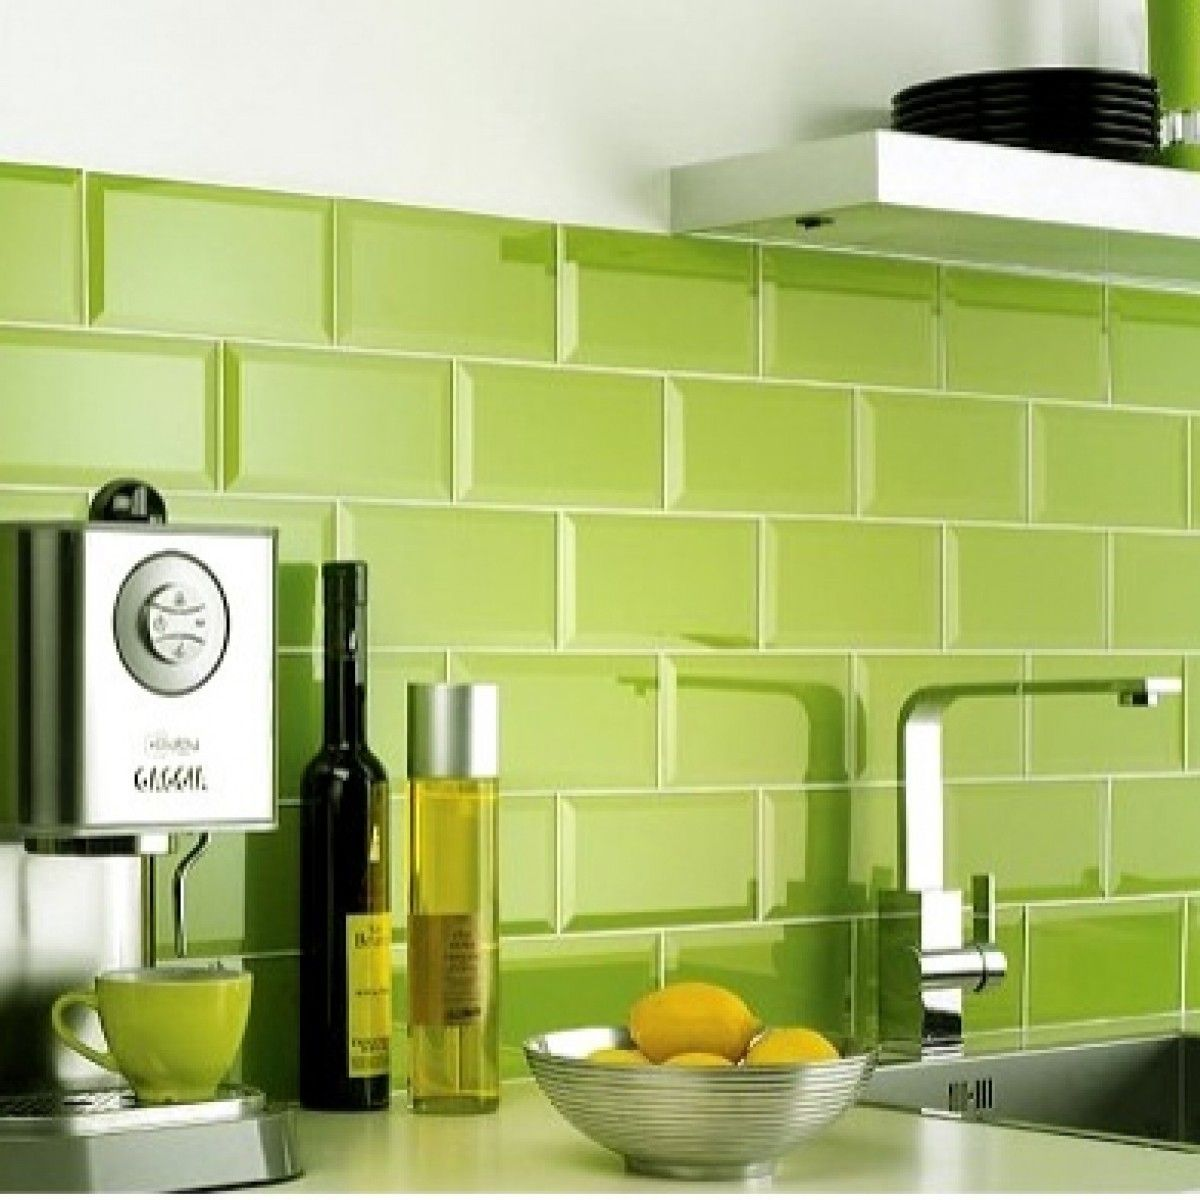 green kitchen wall tiles metro lime green wall tiles 200mm x 100mm banheiro 4033